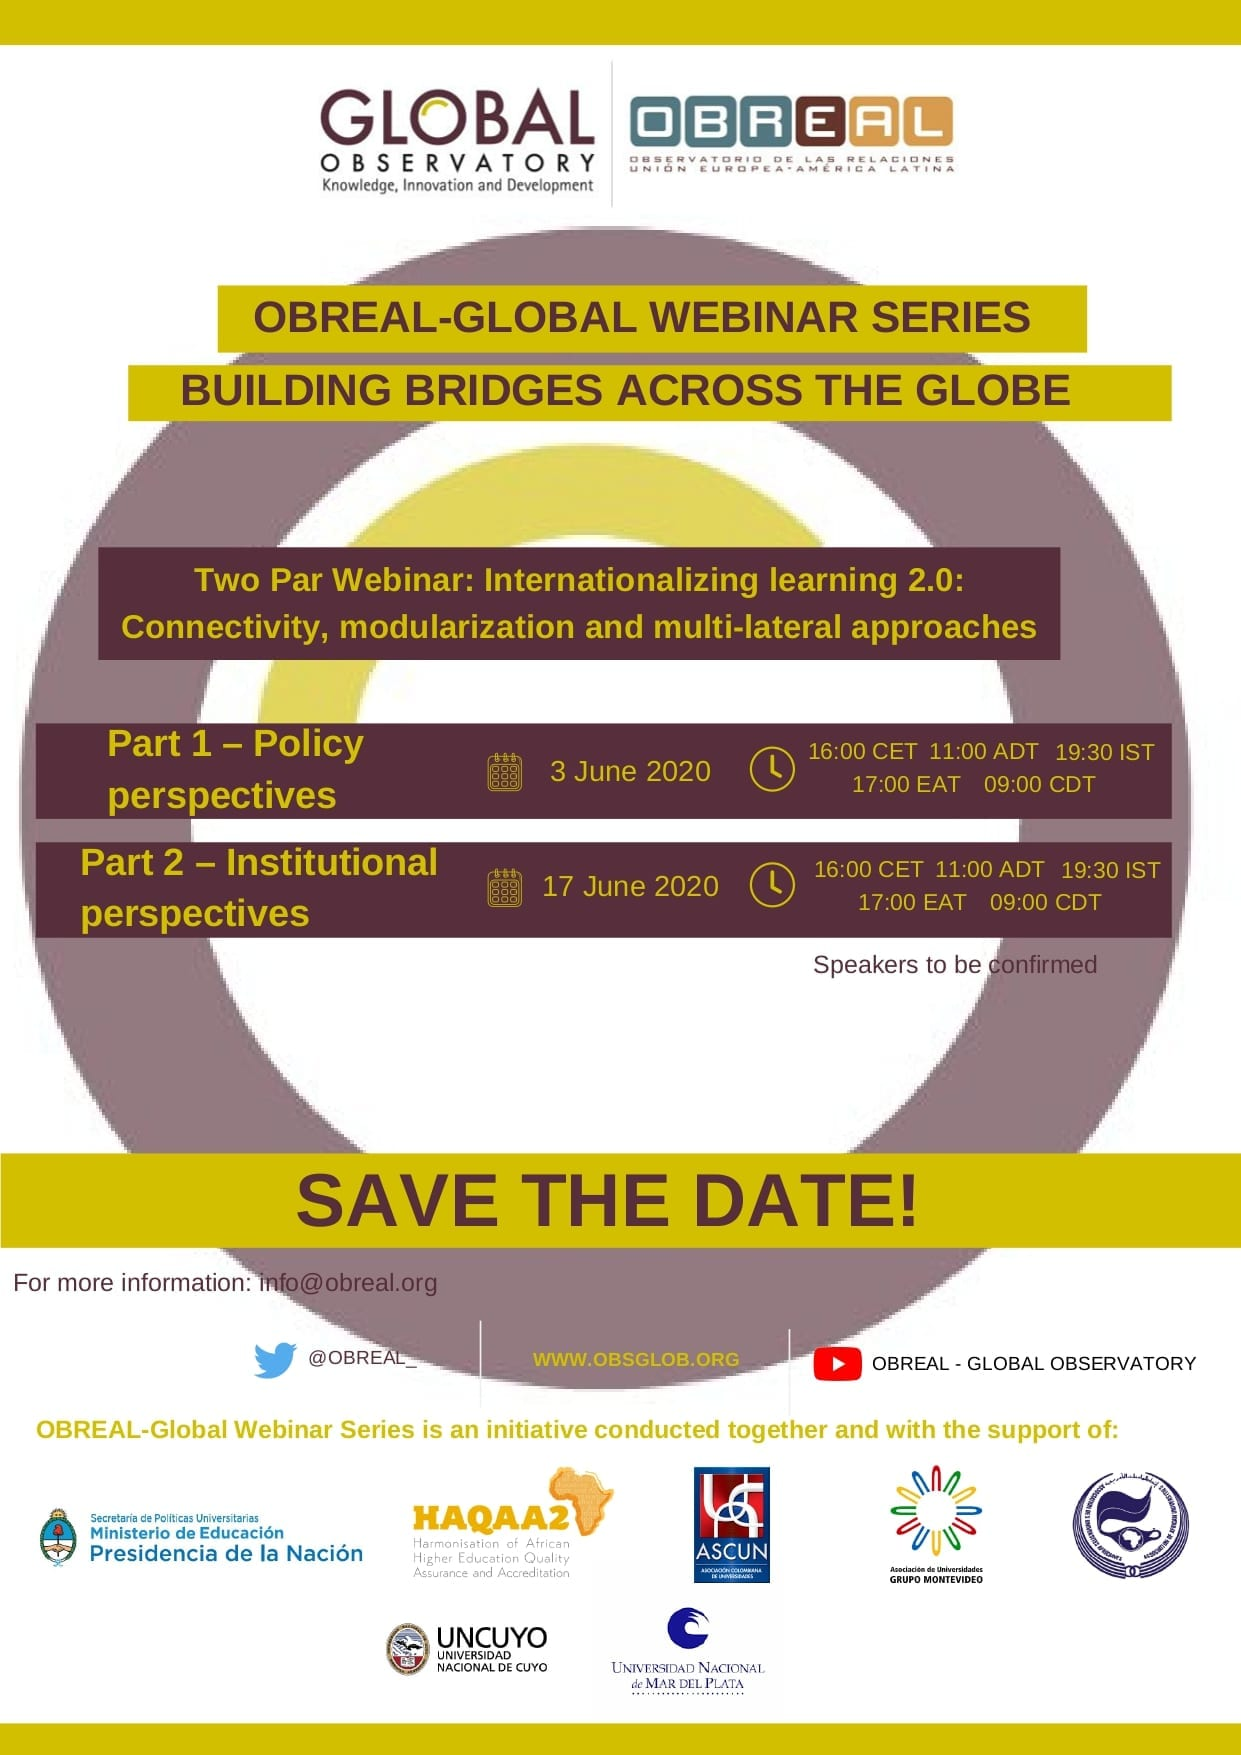 OBREAL GLOBAL Webinar Series: Next sessions